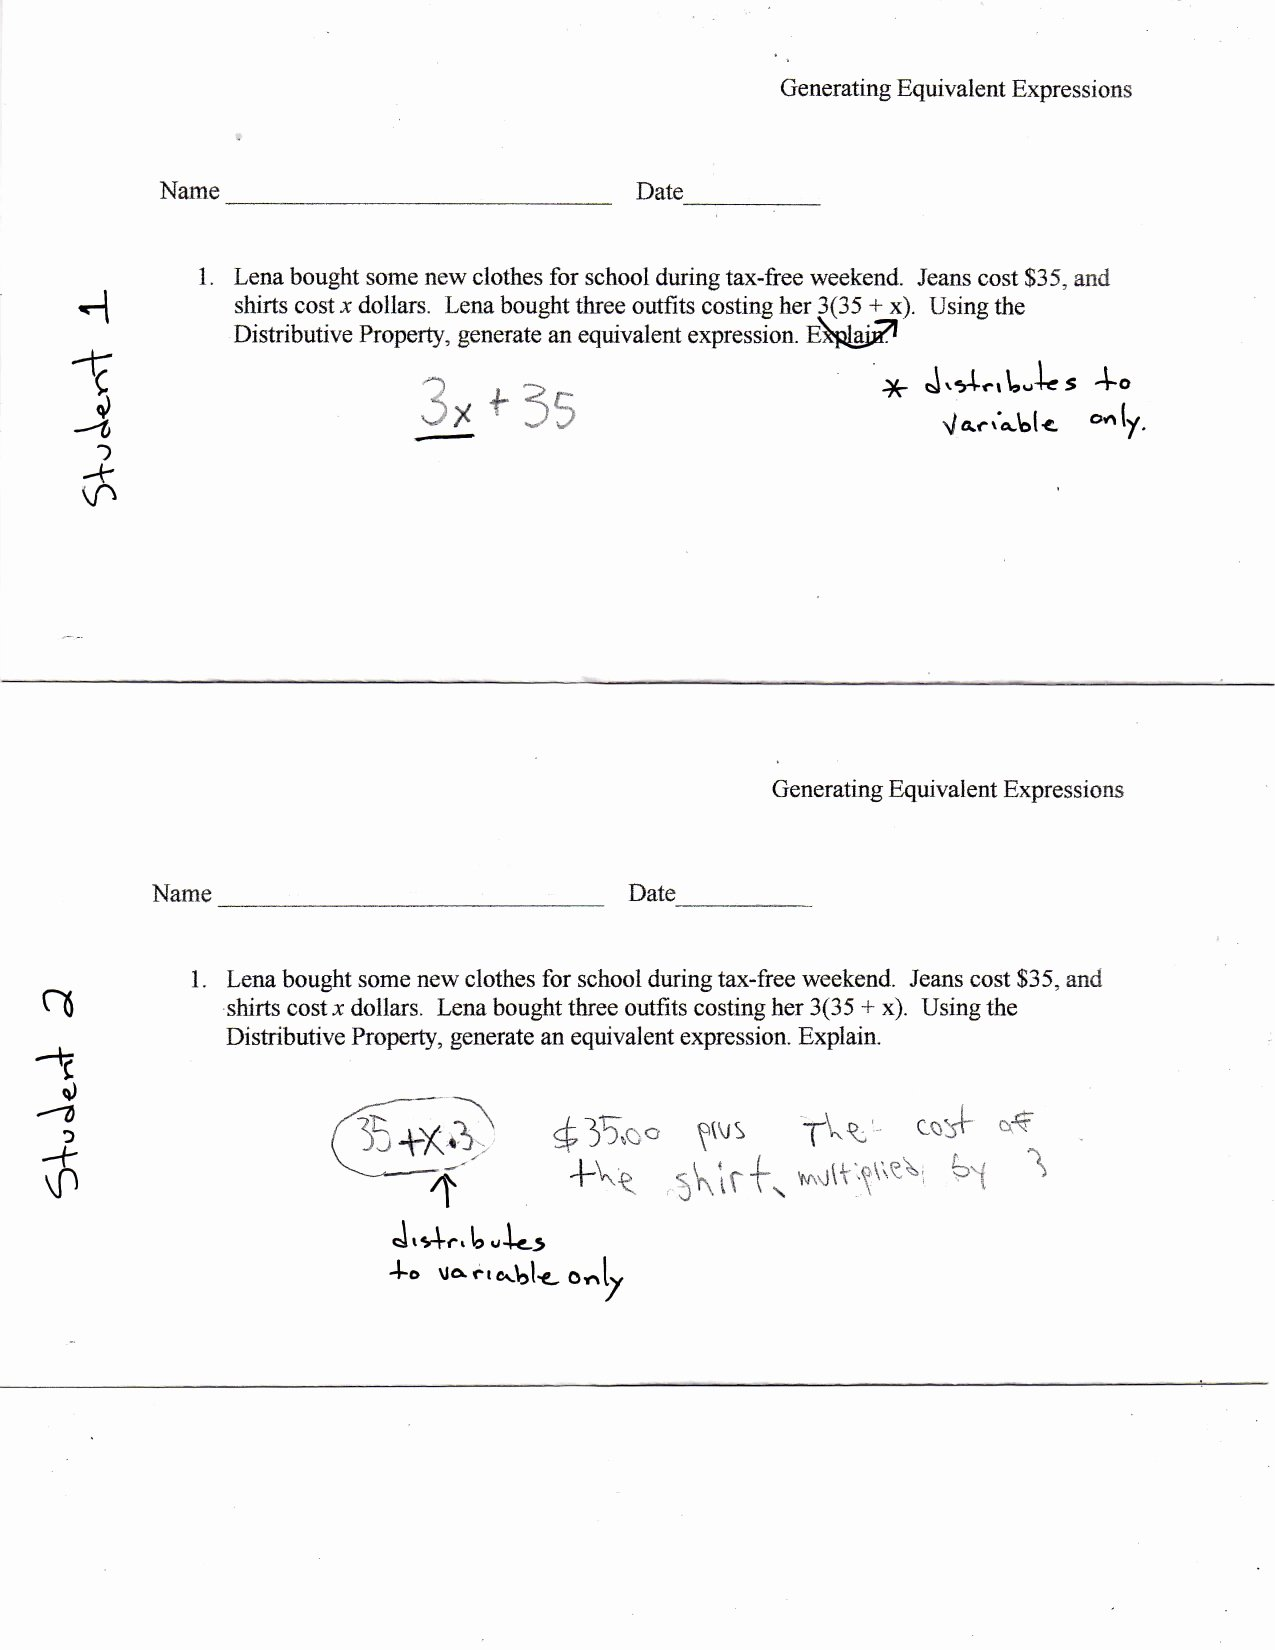 Equivalent Expressions Worksheet 6th Grade Best Of Generating Equivalent Expressions